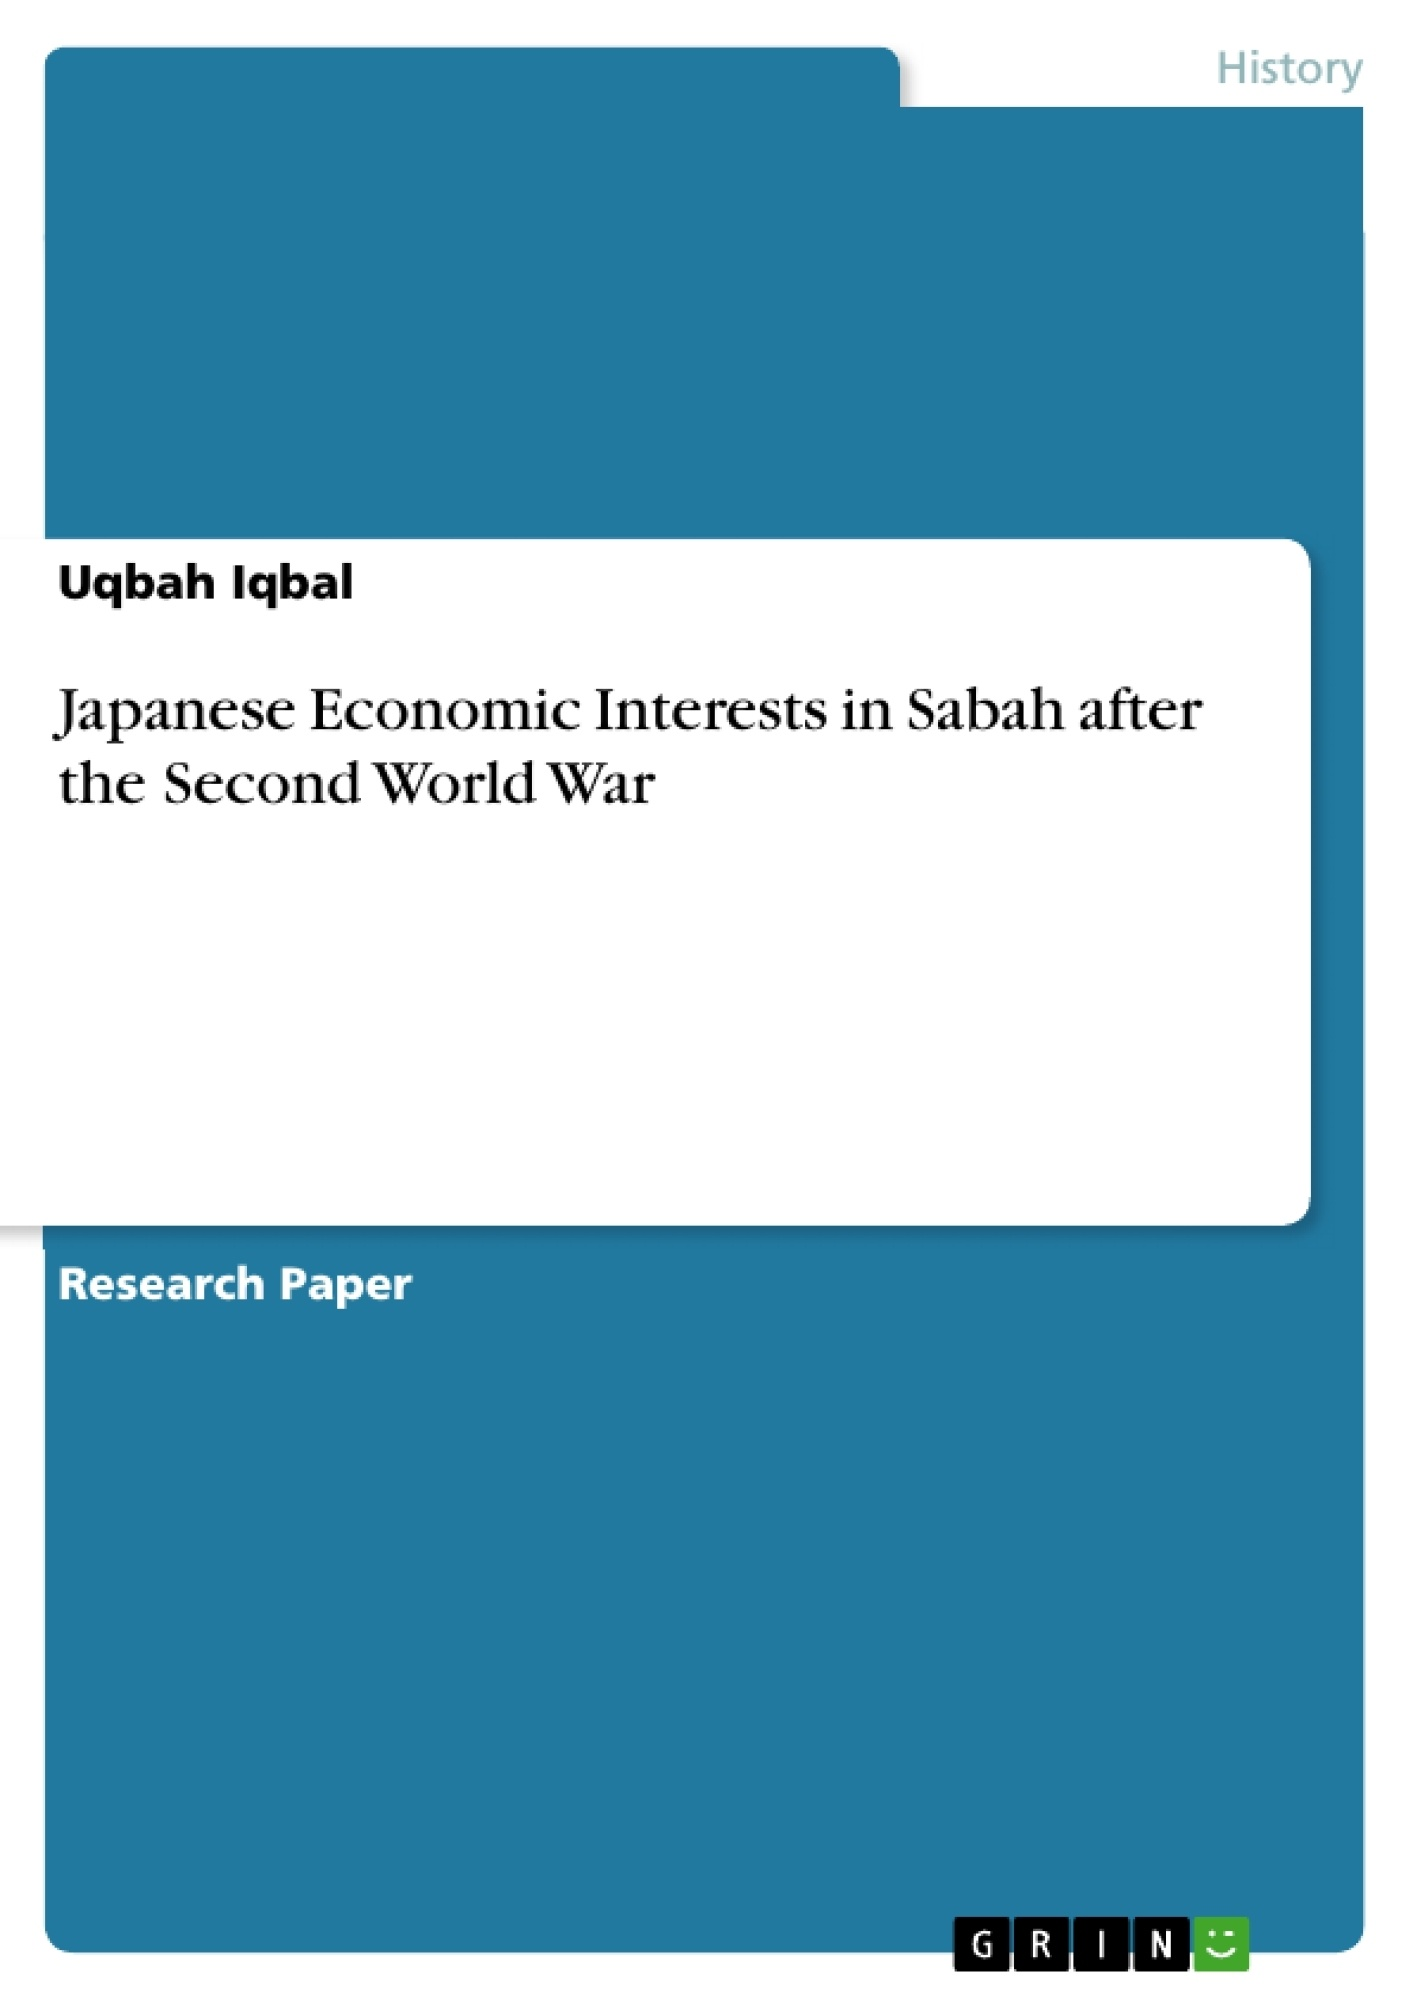 Title: Japanese Economic Interests in Sabah after the Second World War